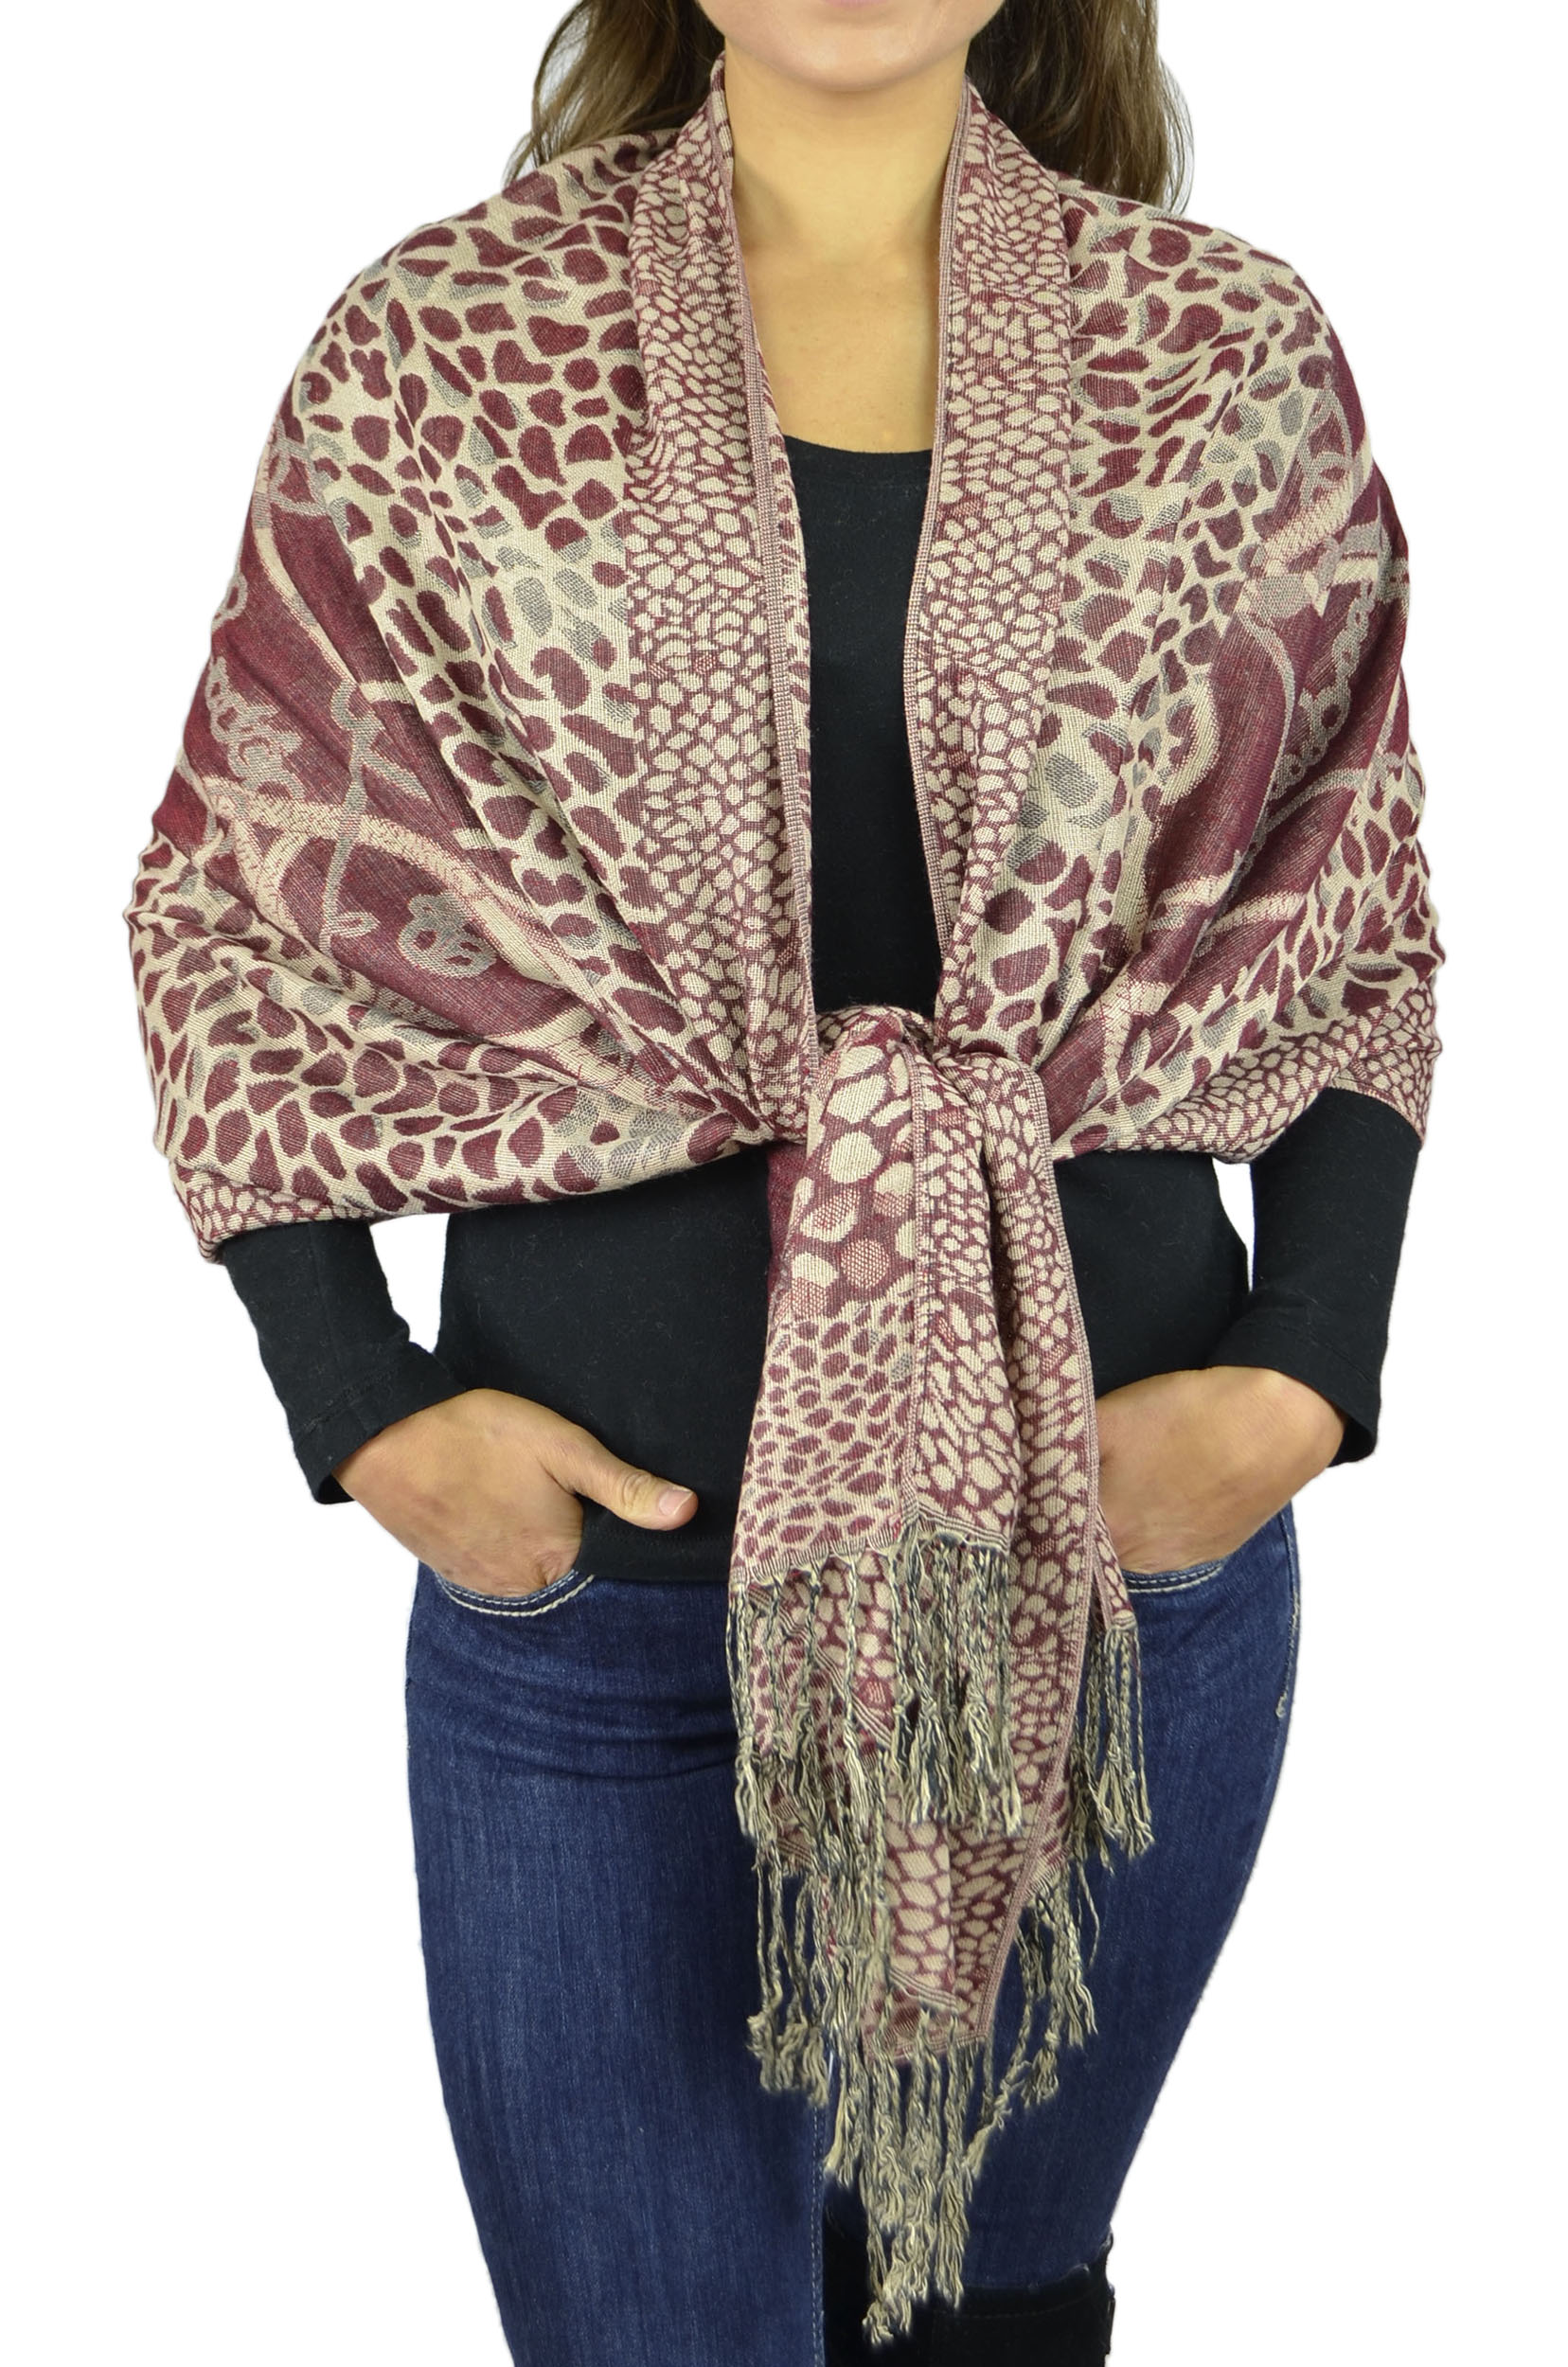 Pashmina Women Soft Wrap Shawl Animal Print Scarf By Belle Donne - Maroon